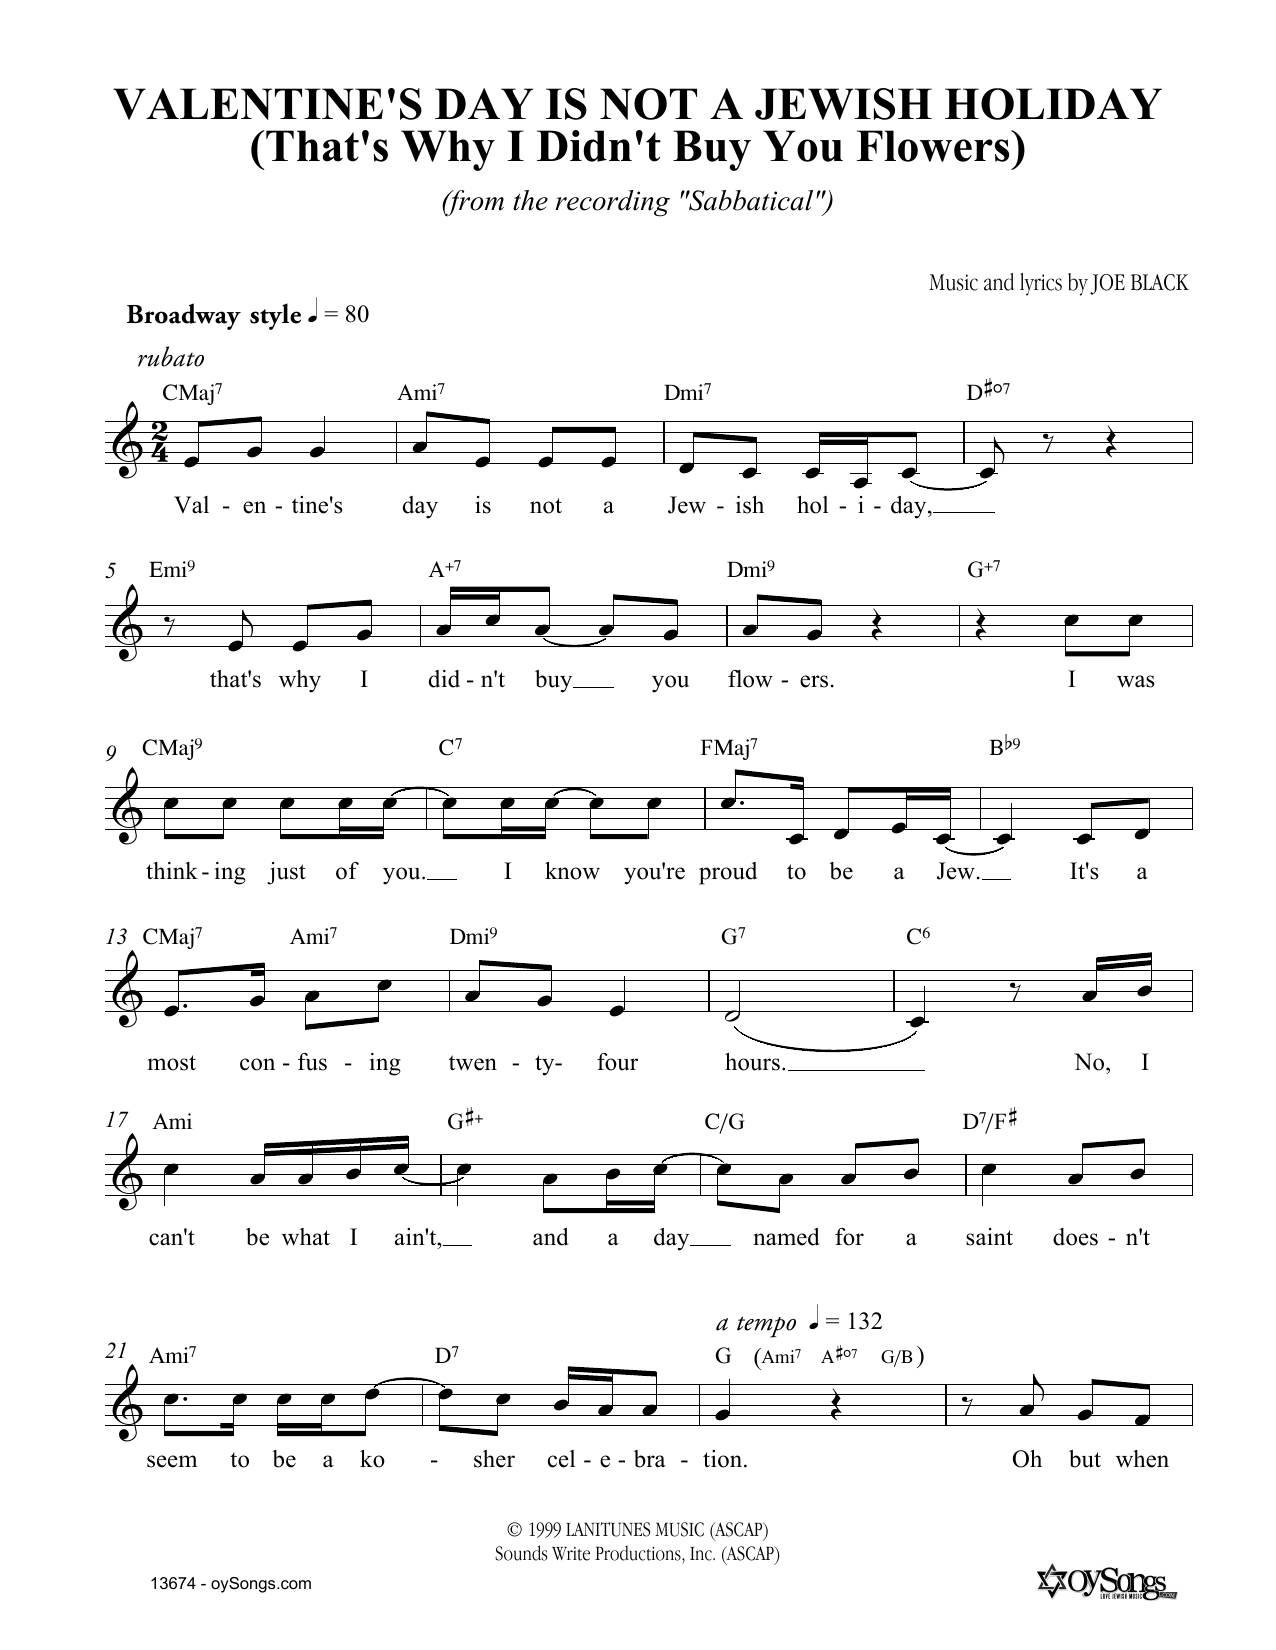 Valentines day is not a jewish holiday chords by joe black joe black valentines day is not a jewish holiday melody line lyrics chords hexwebz Image collections